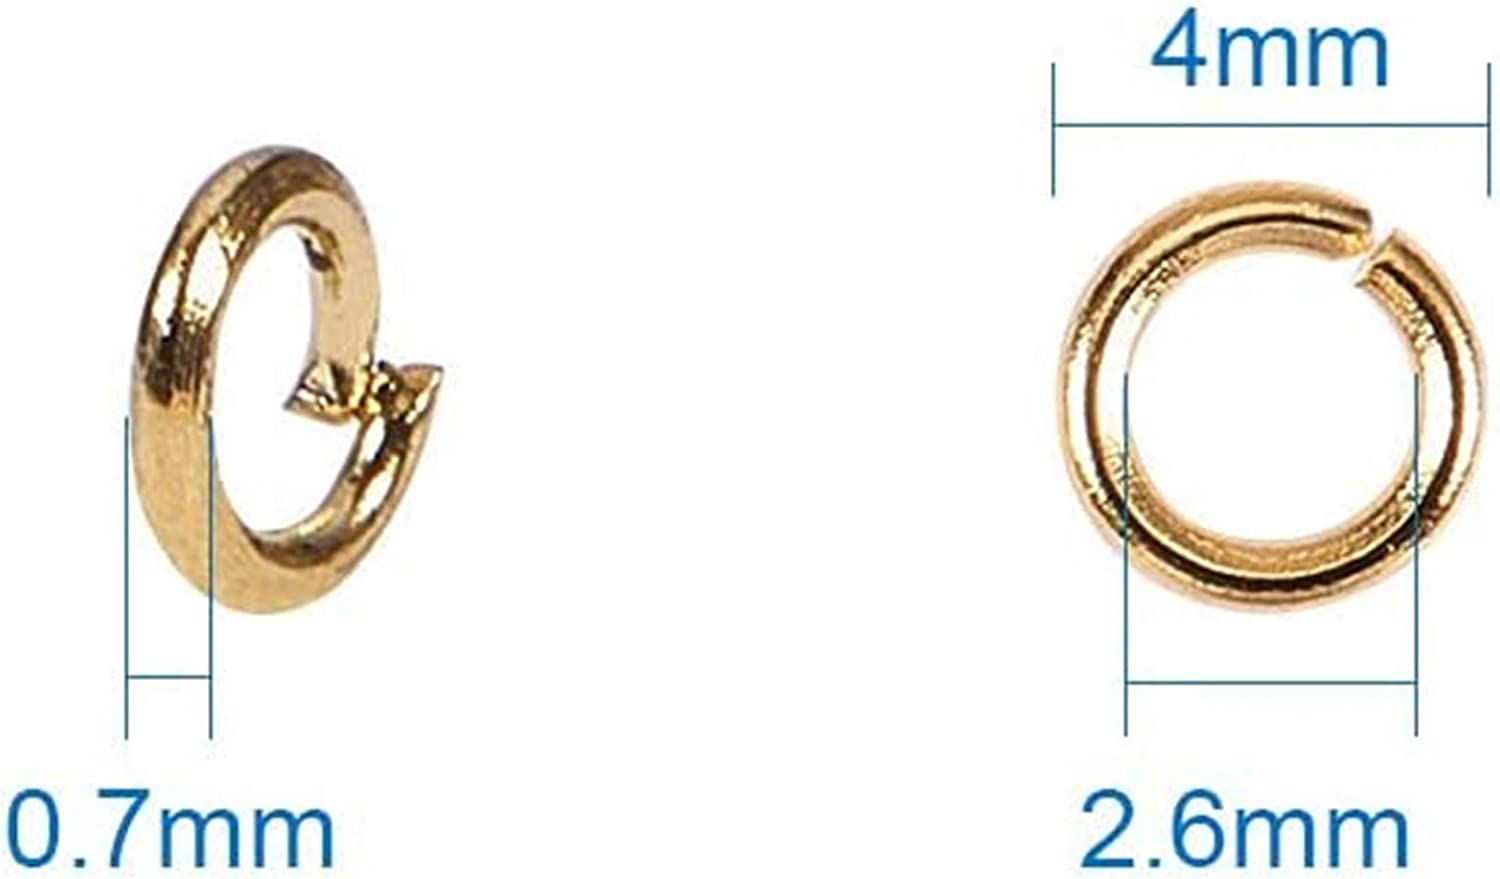 3300 Pcs Jump Rings 4mm Diameter Iron Plated DIY Jewelry Making for Earring Bracelet Necklace